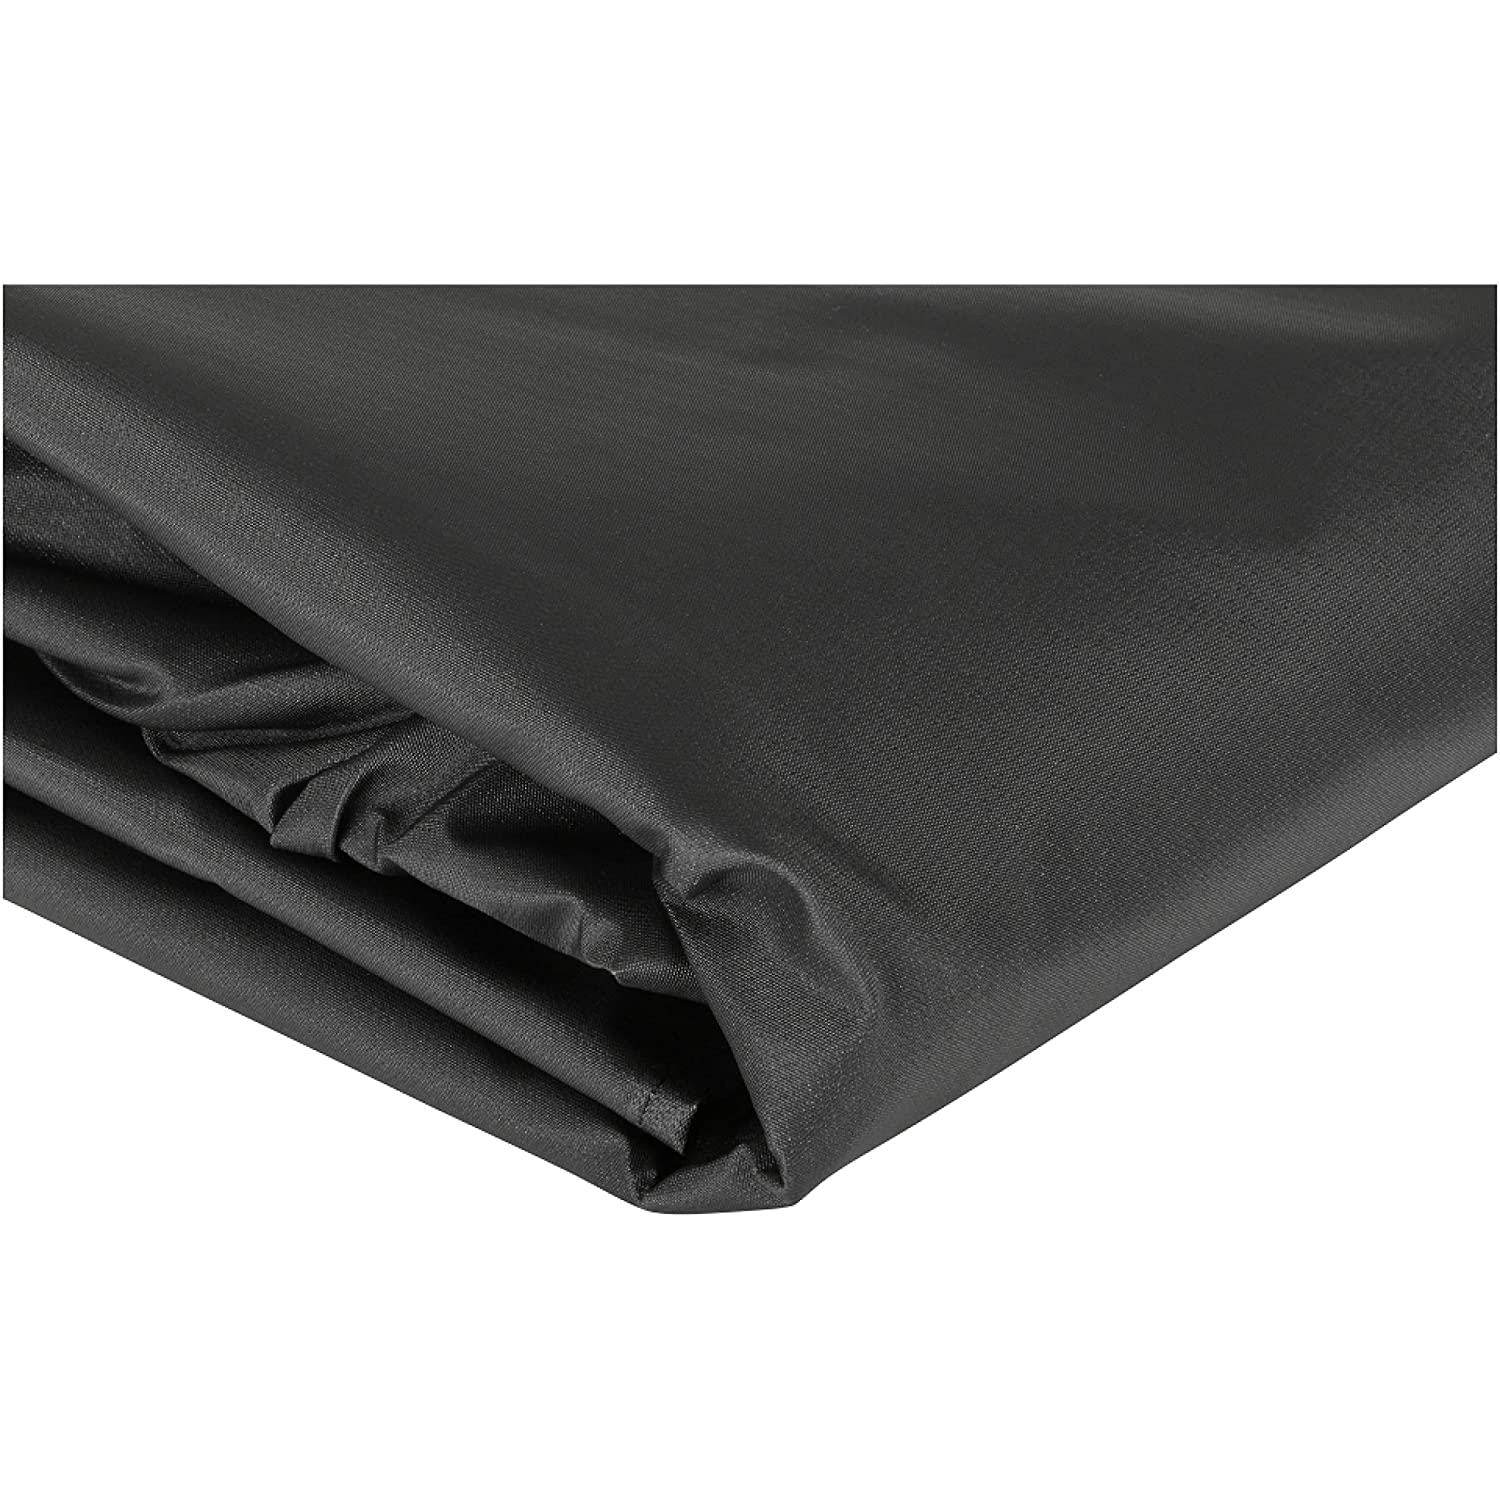 Char-Griller 8080 Dual Fuel Grill Cover